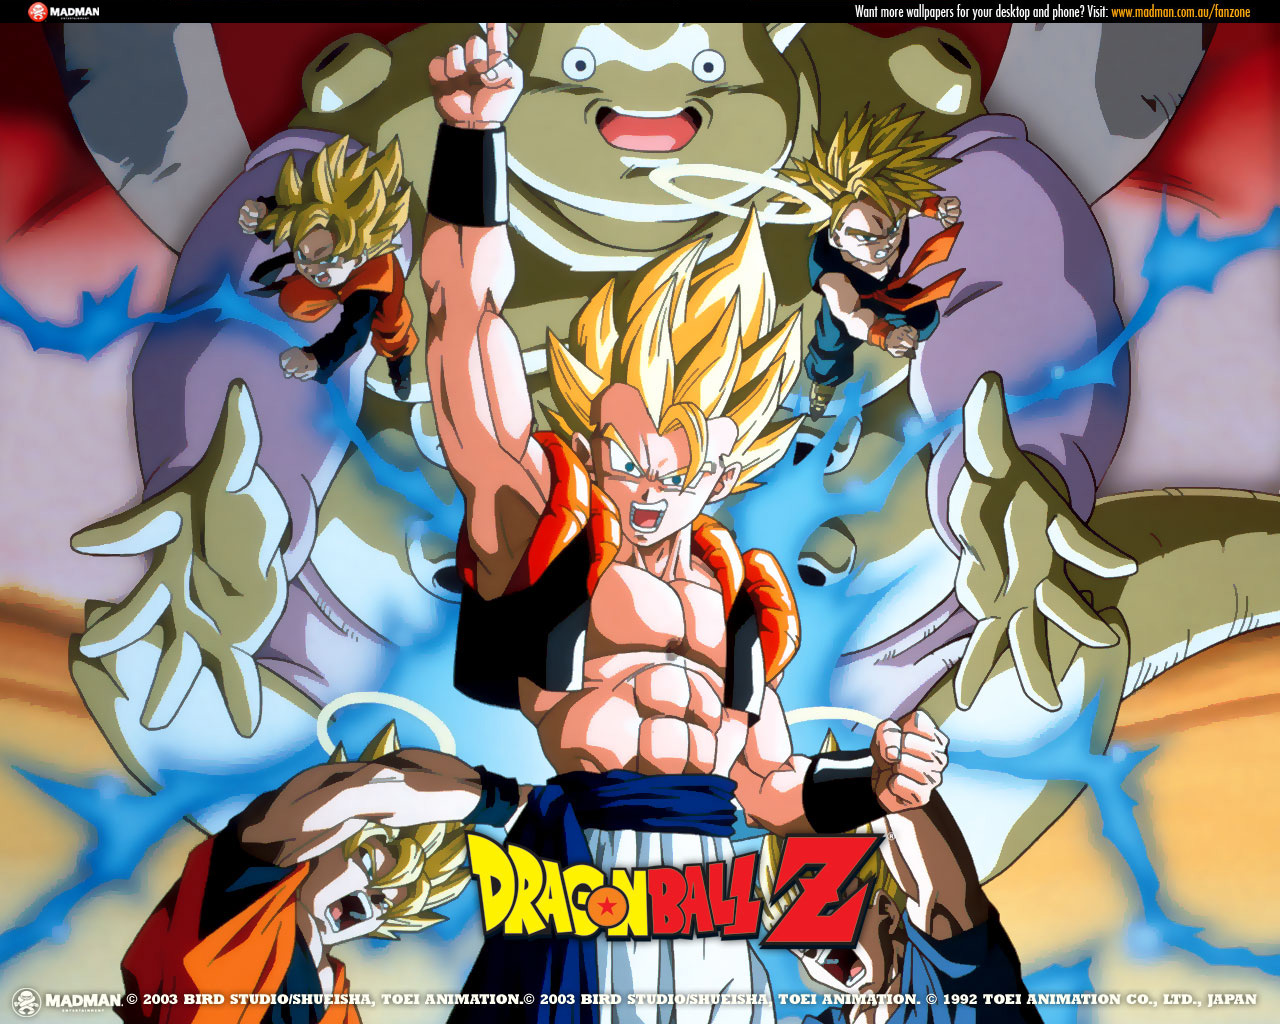 dragon ball z wallpapers beautiful cool wallpapers